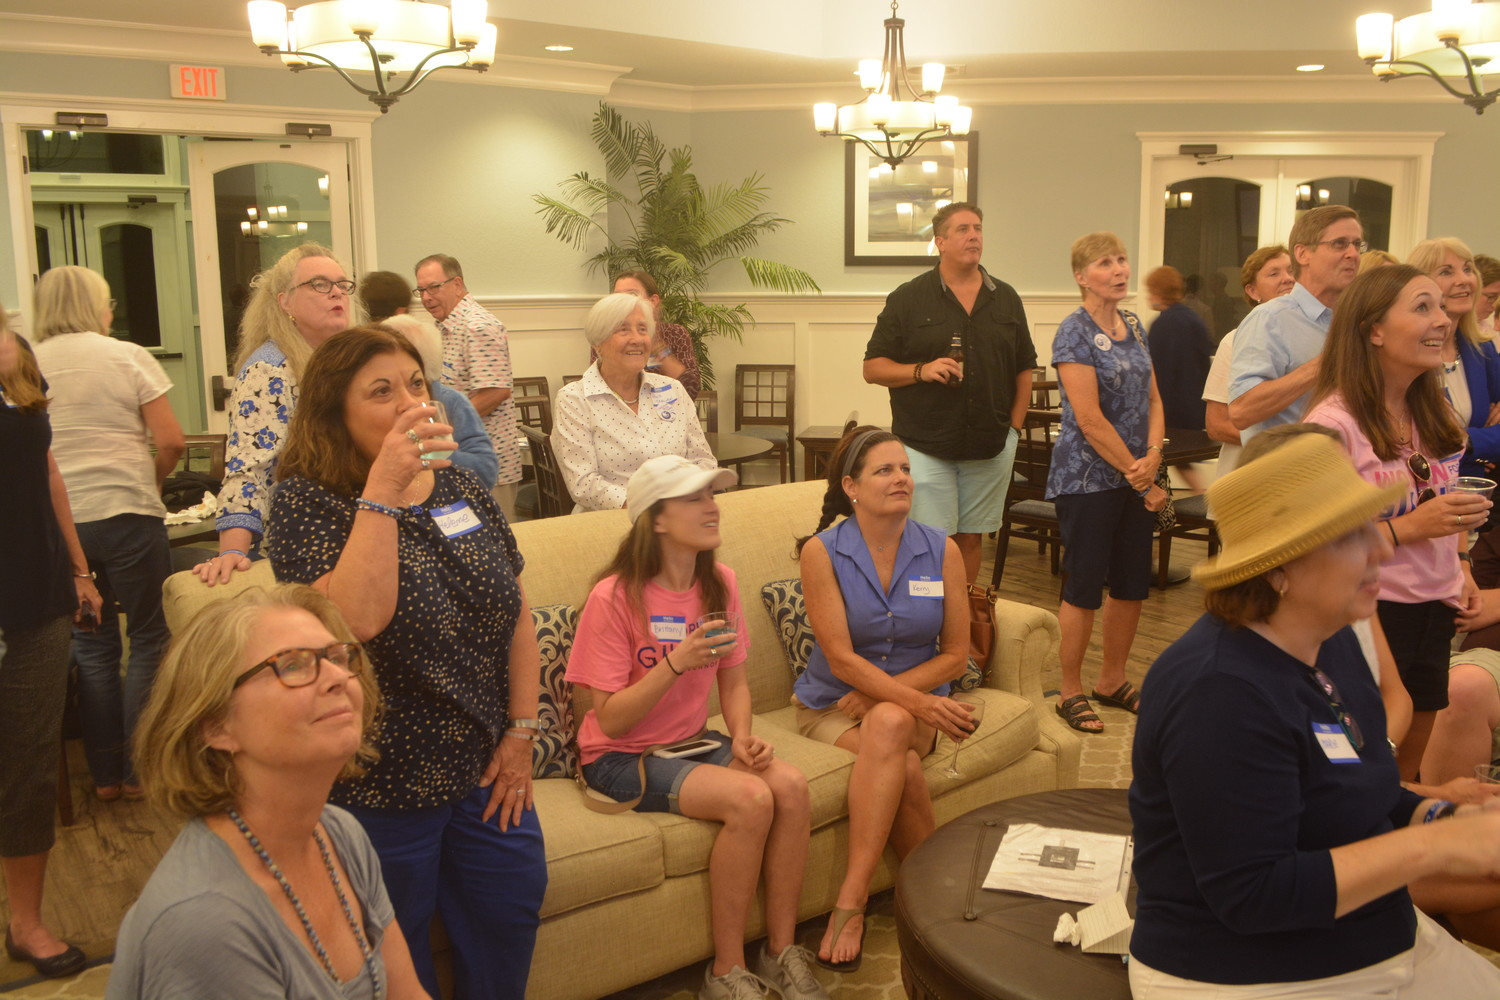 Ponte Vedra Democratic Club members and guests wait for poll results at an Aug. 28 watch party at the Coastal Oaks at Nocatee clubhouse.